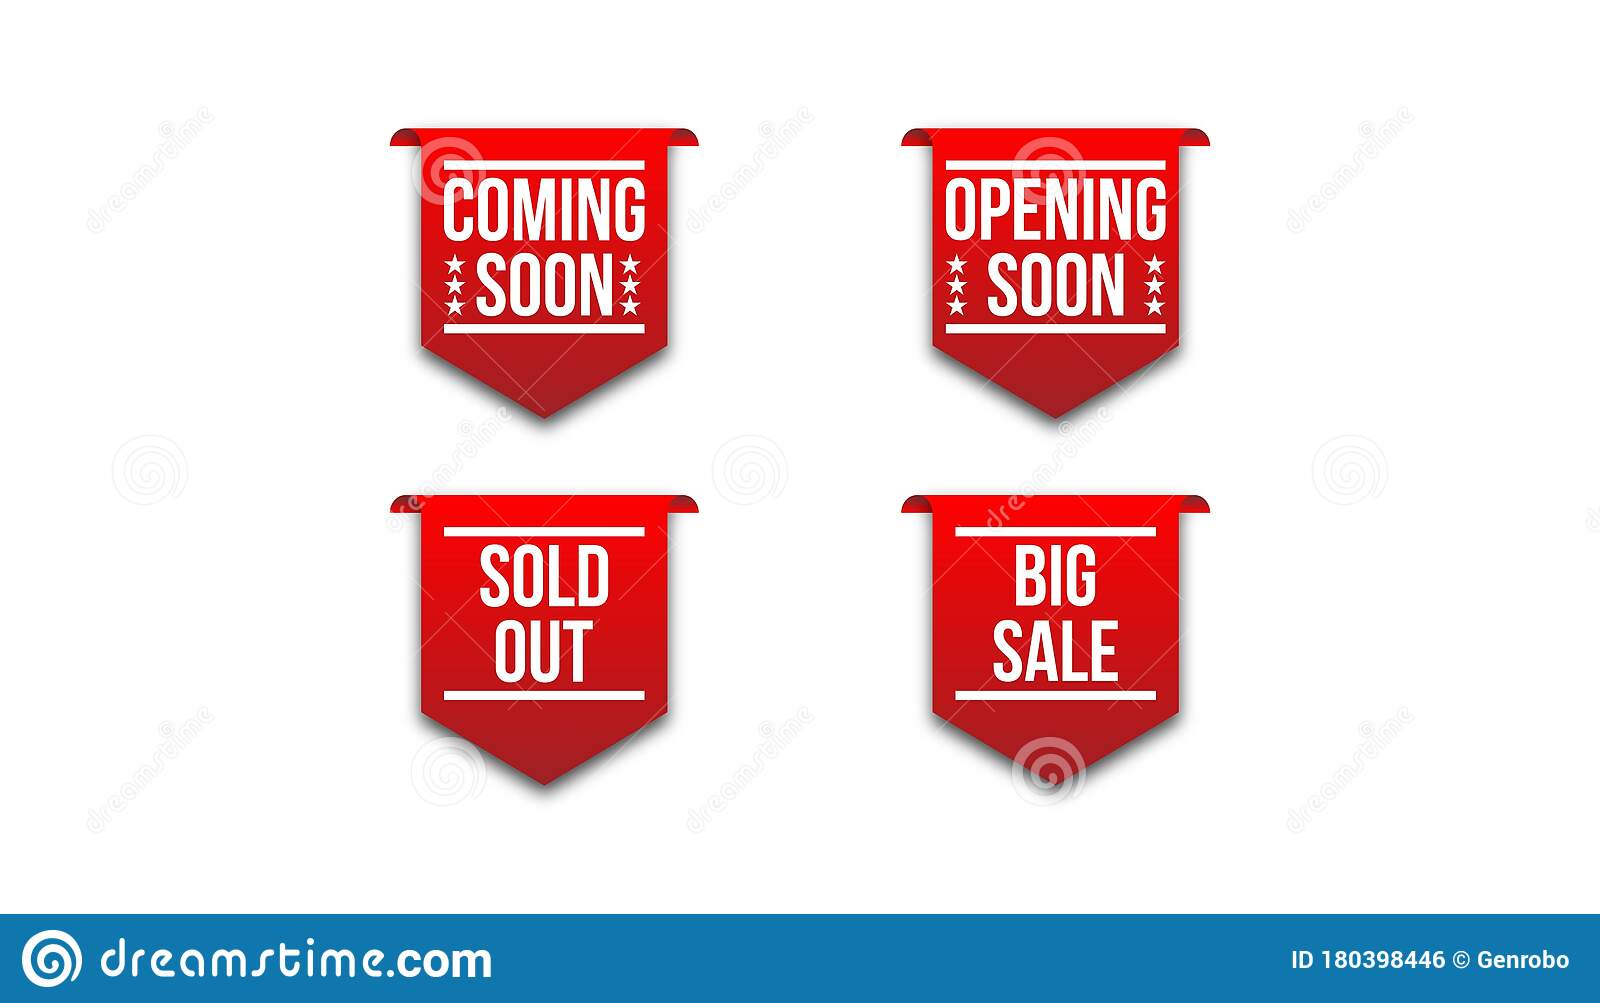 Red Badge Ribbon Coming Soon Opening Soon Sold Out Big Sale Stock Illustration Illustration Of Circle Icon 180398446